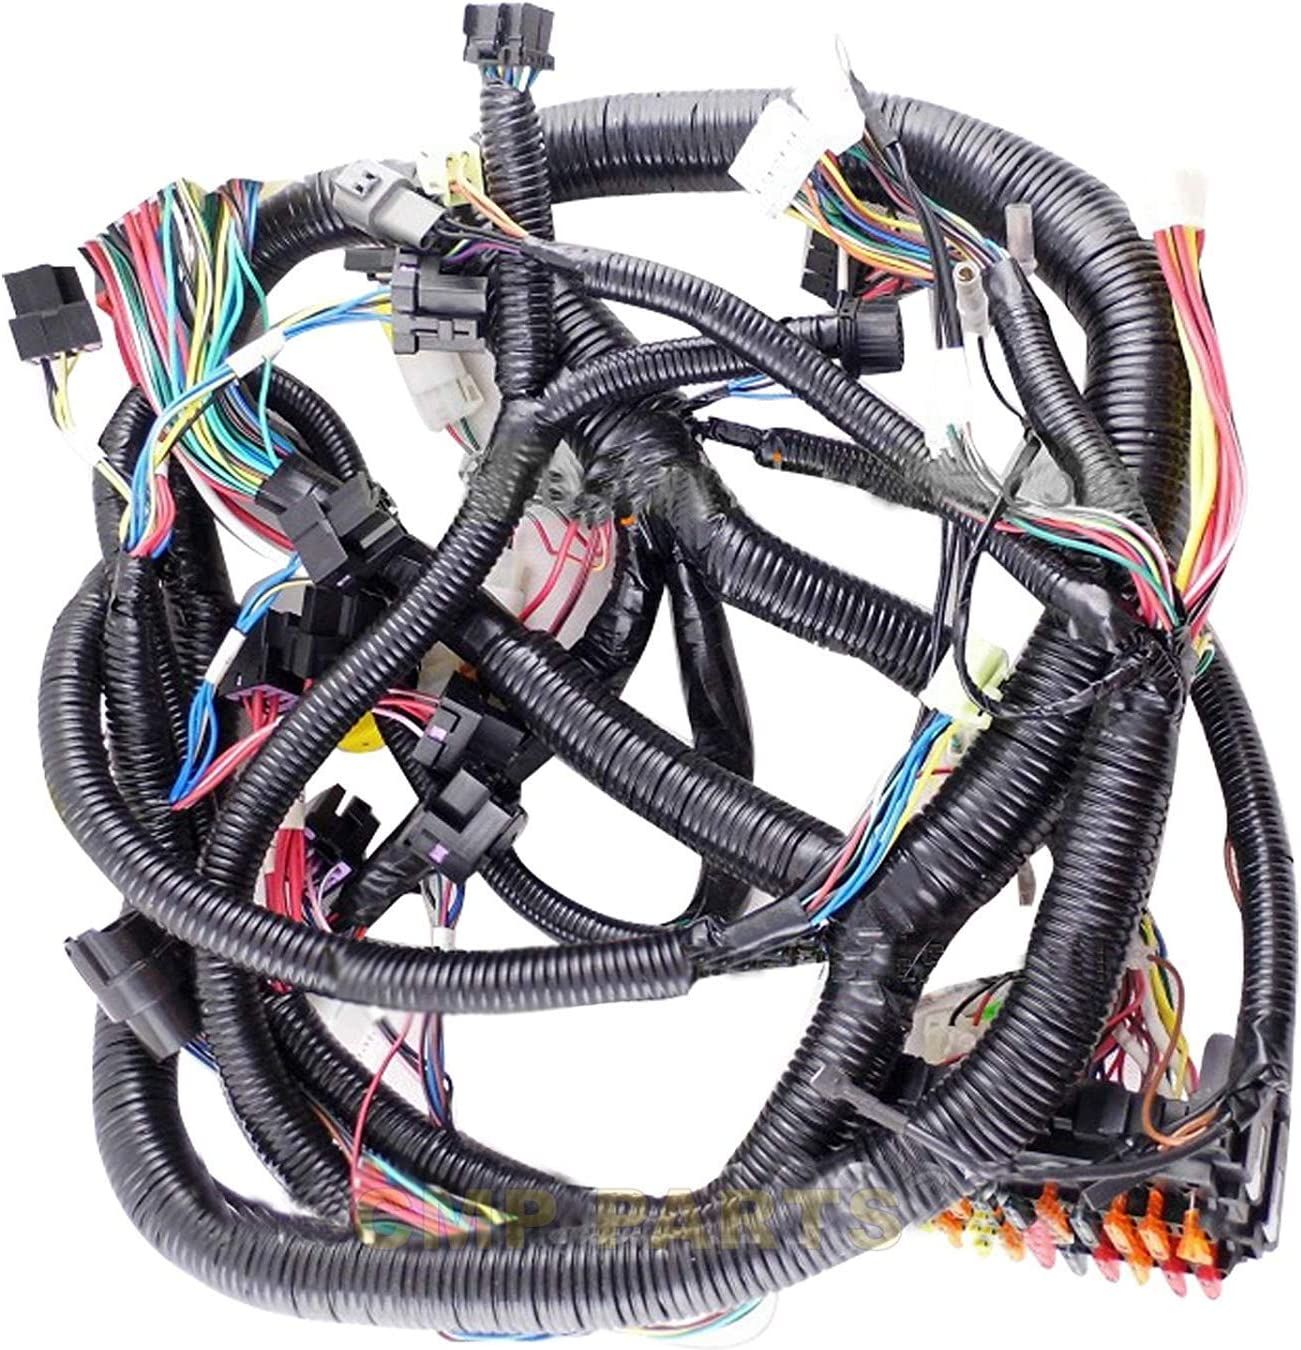 4681837 0005473 Special Campaign 0006494 ZX200-3 Outer Harness External Dallas Mall Wiring fo